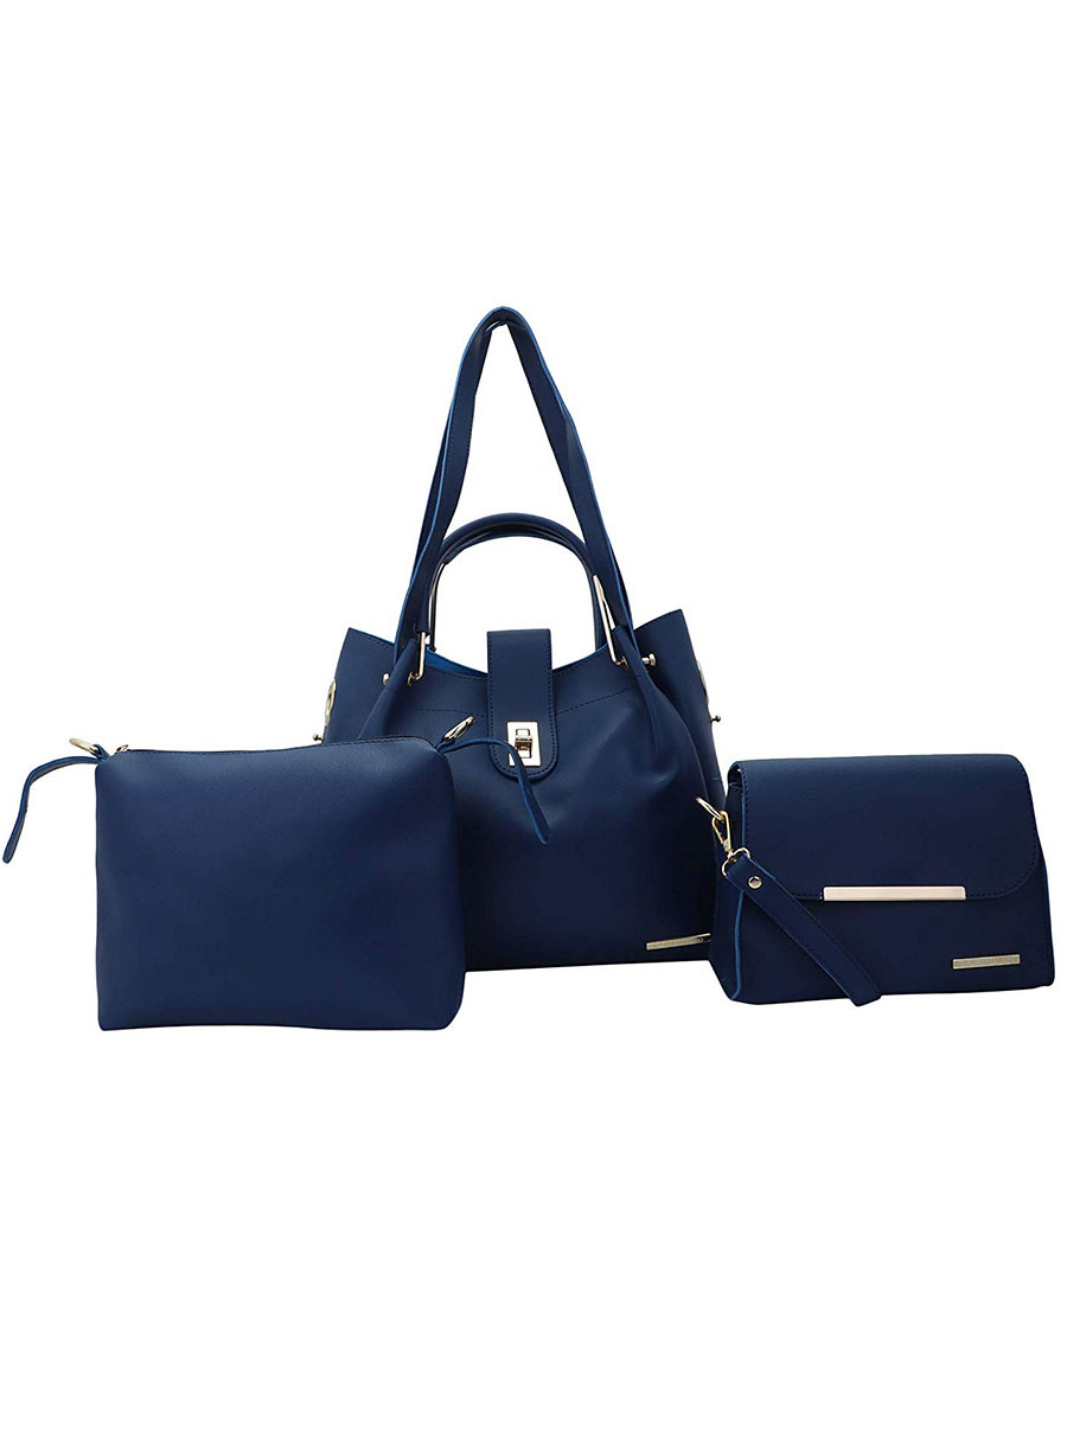 Women's Combo Synthetic Handbag, Sling Bag and Pouch - Blue